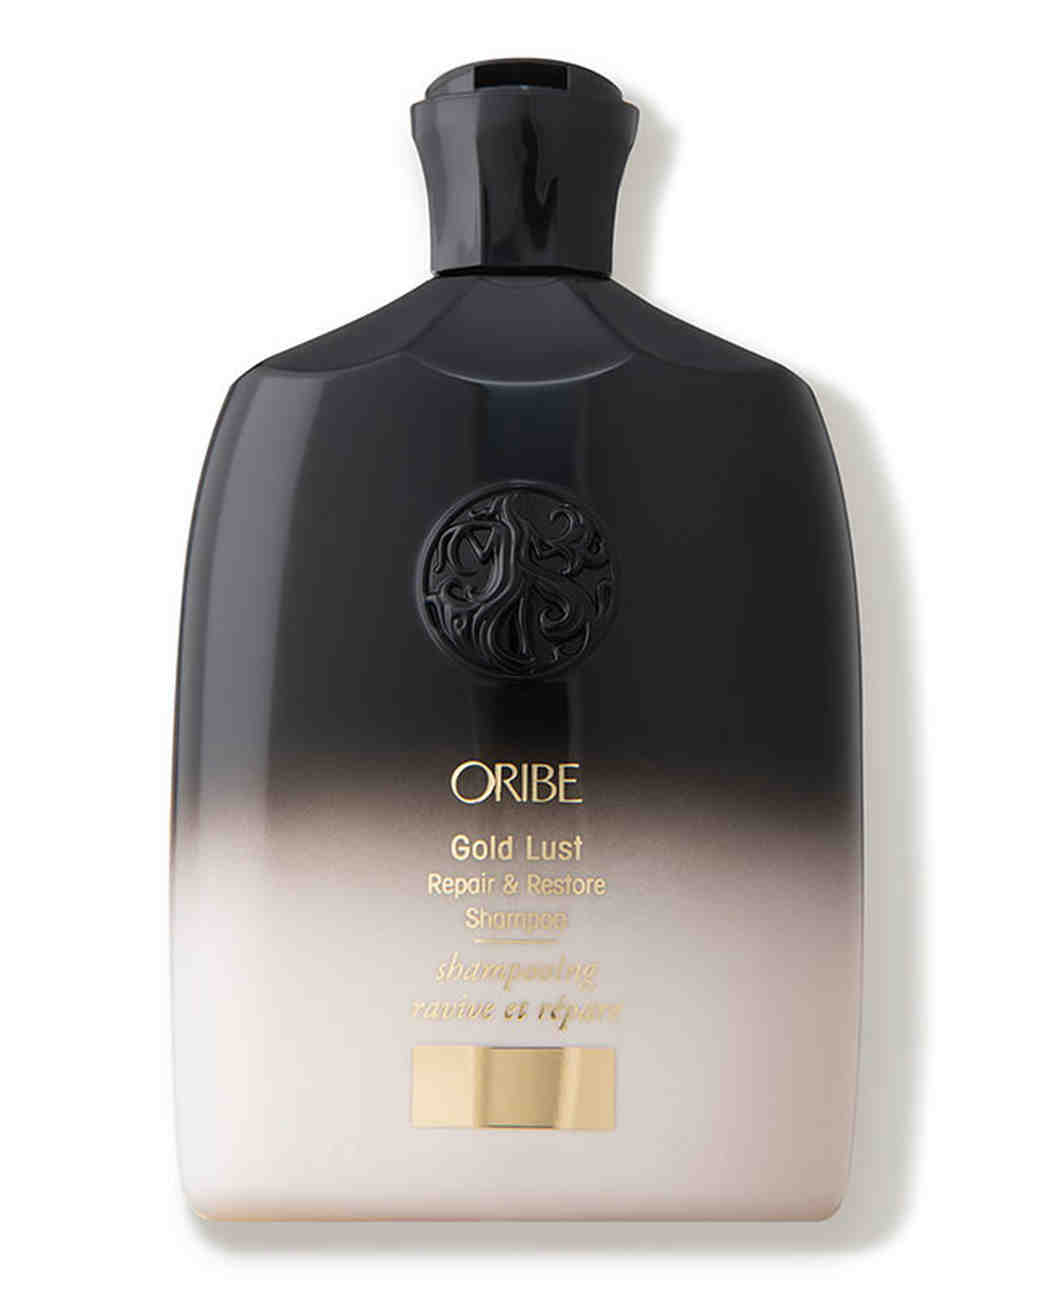 Oribe Gold Lust Shampoo, Best Shampoo for Brides